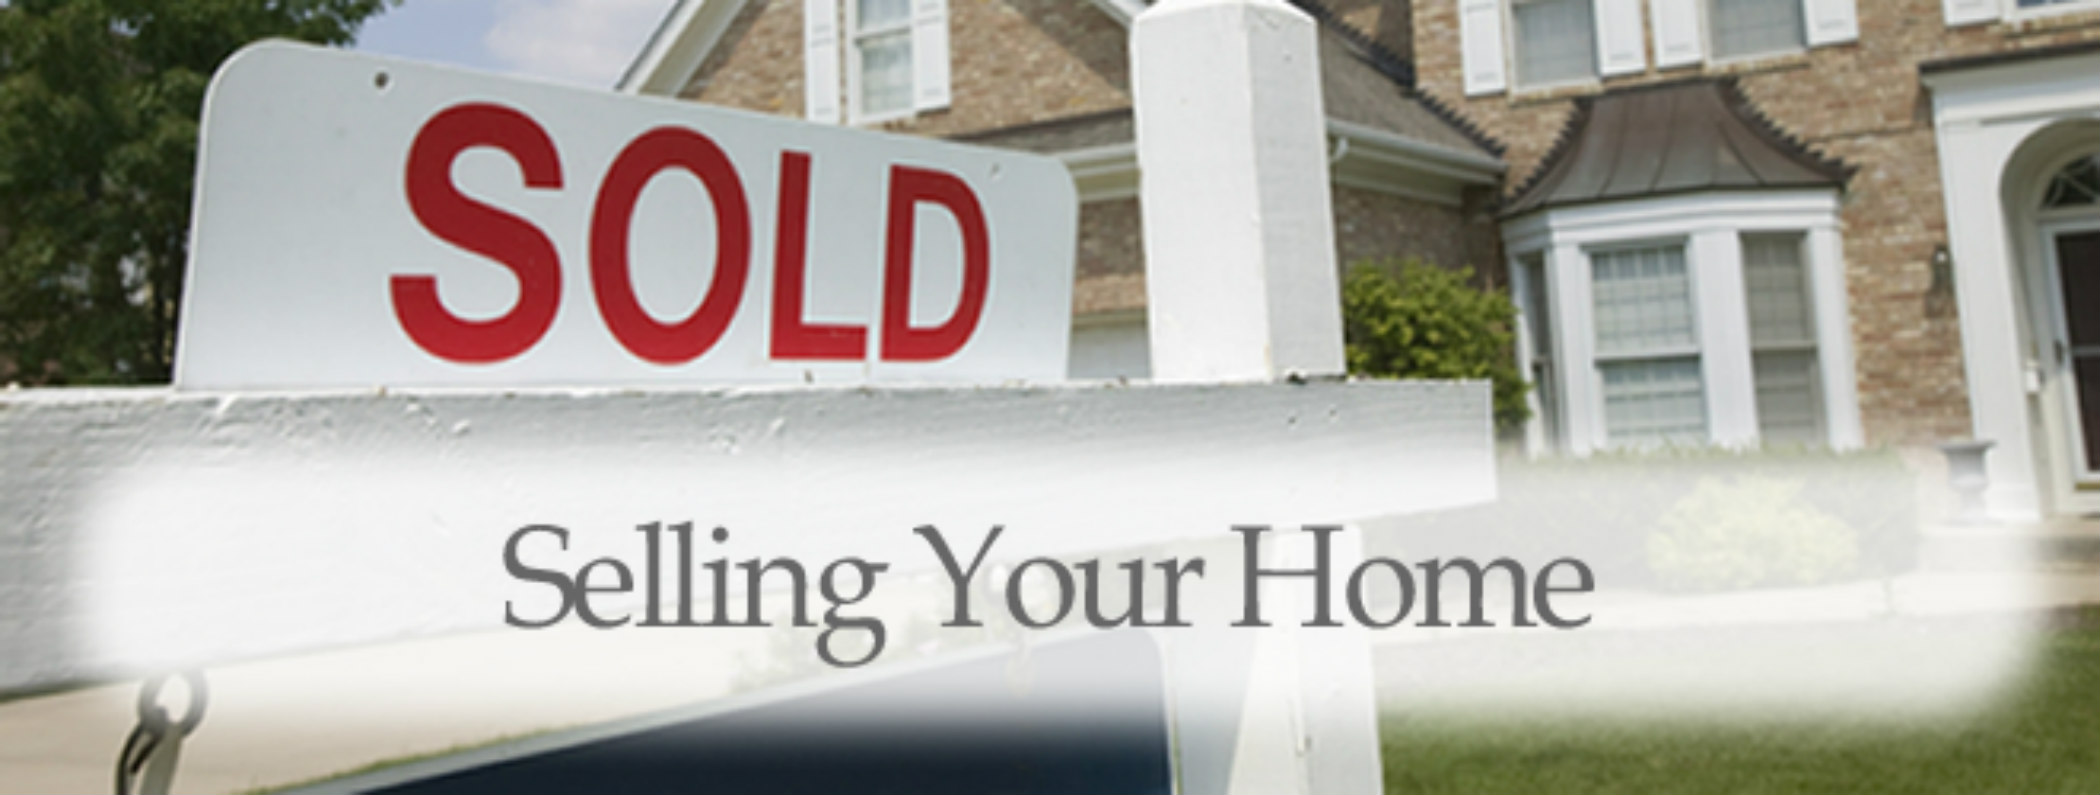 Sell Your Home with The Ayers Team